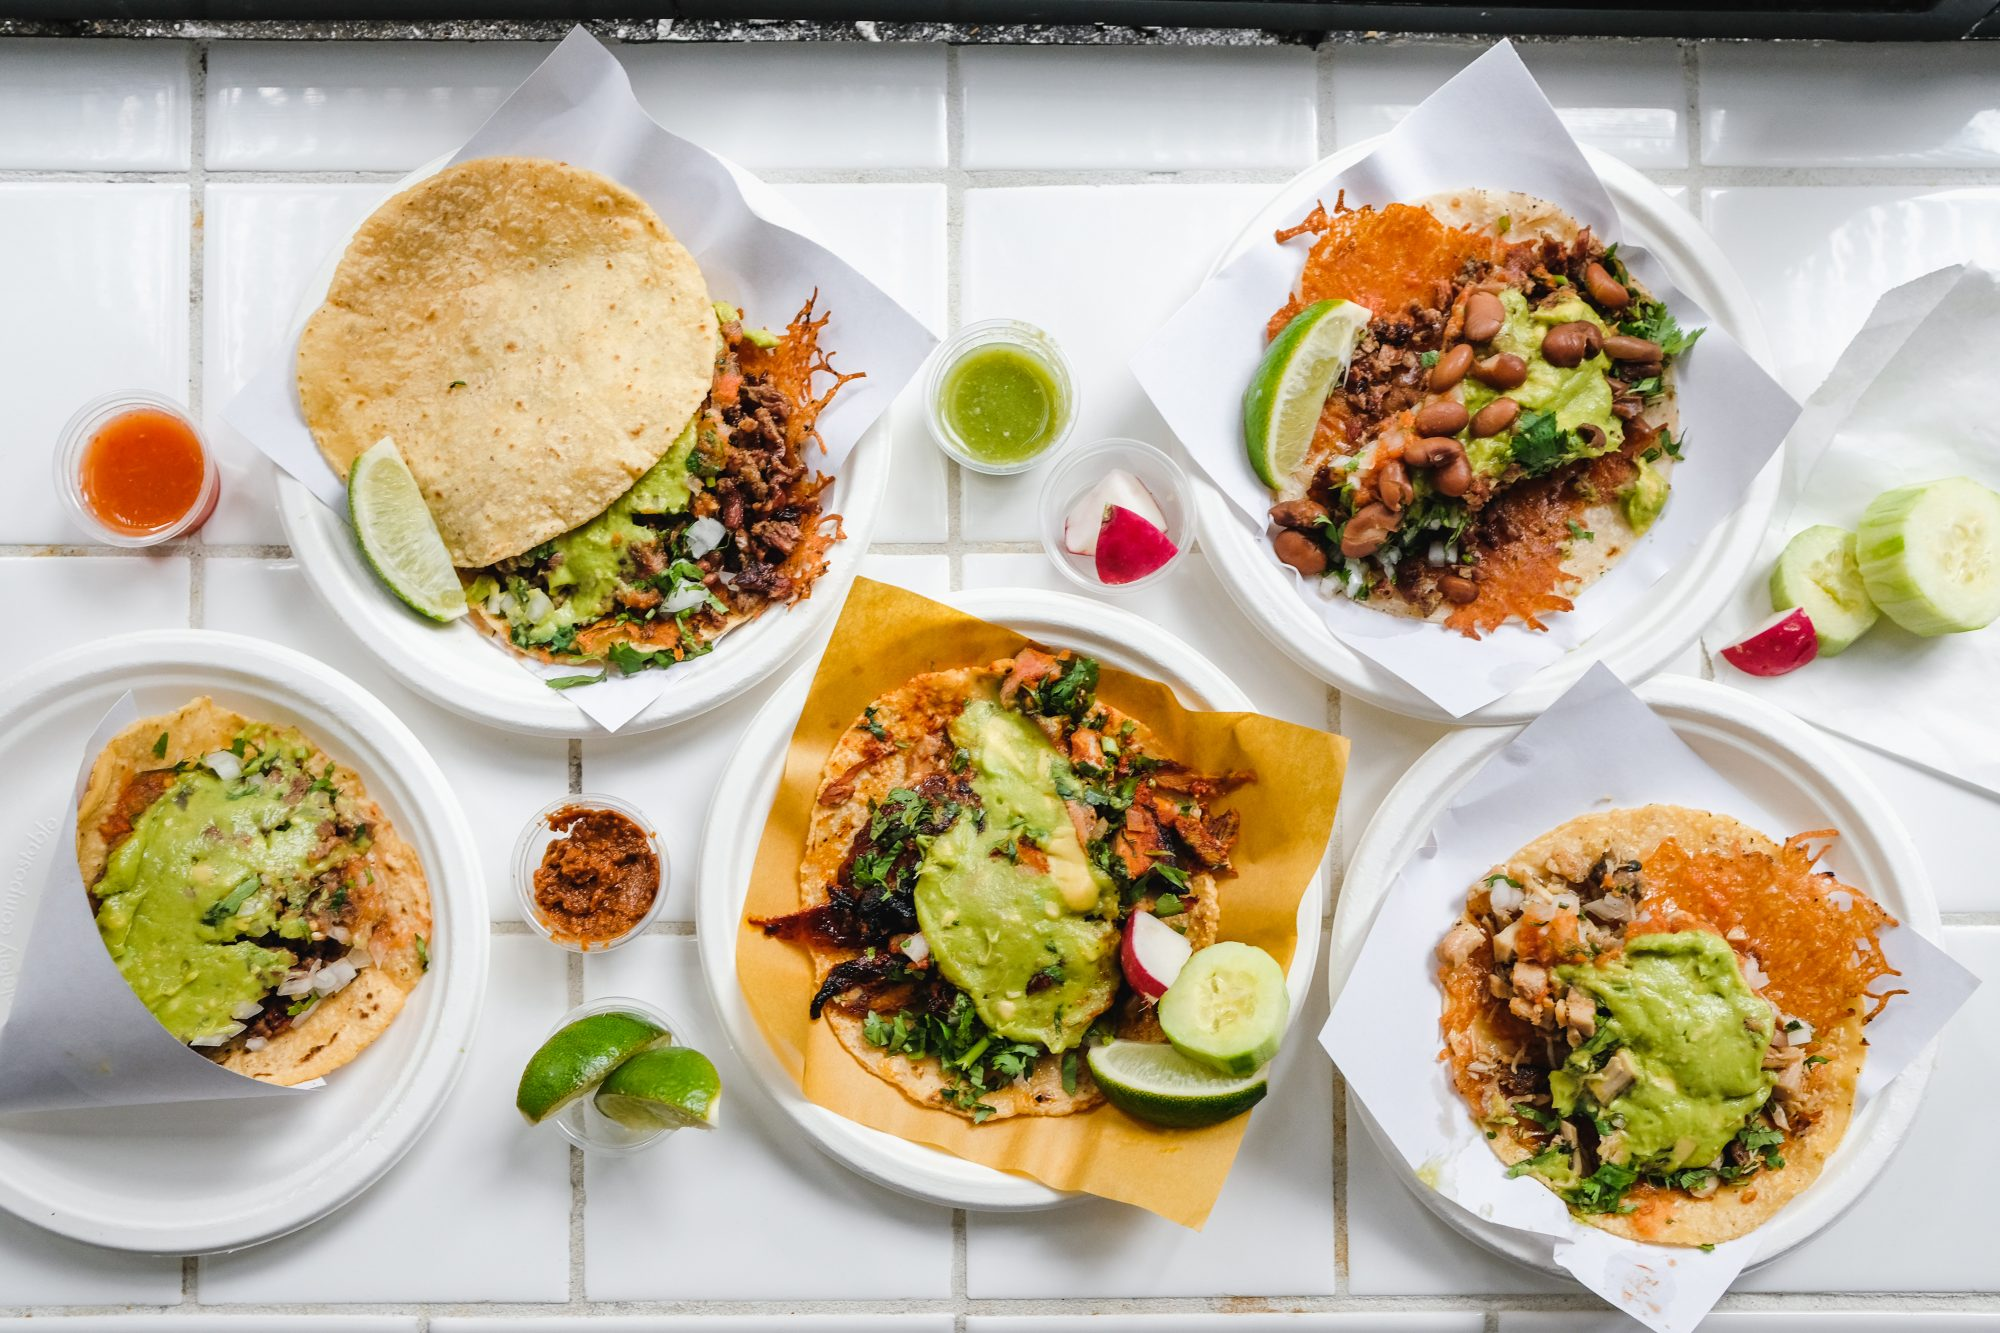 5 Blockbuster L.A. Restaurant Openings You Need to Check Out This Summer